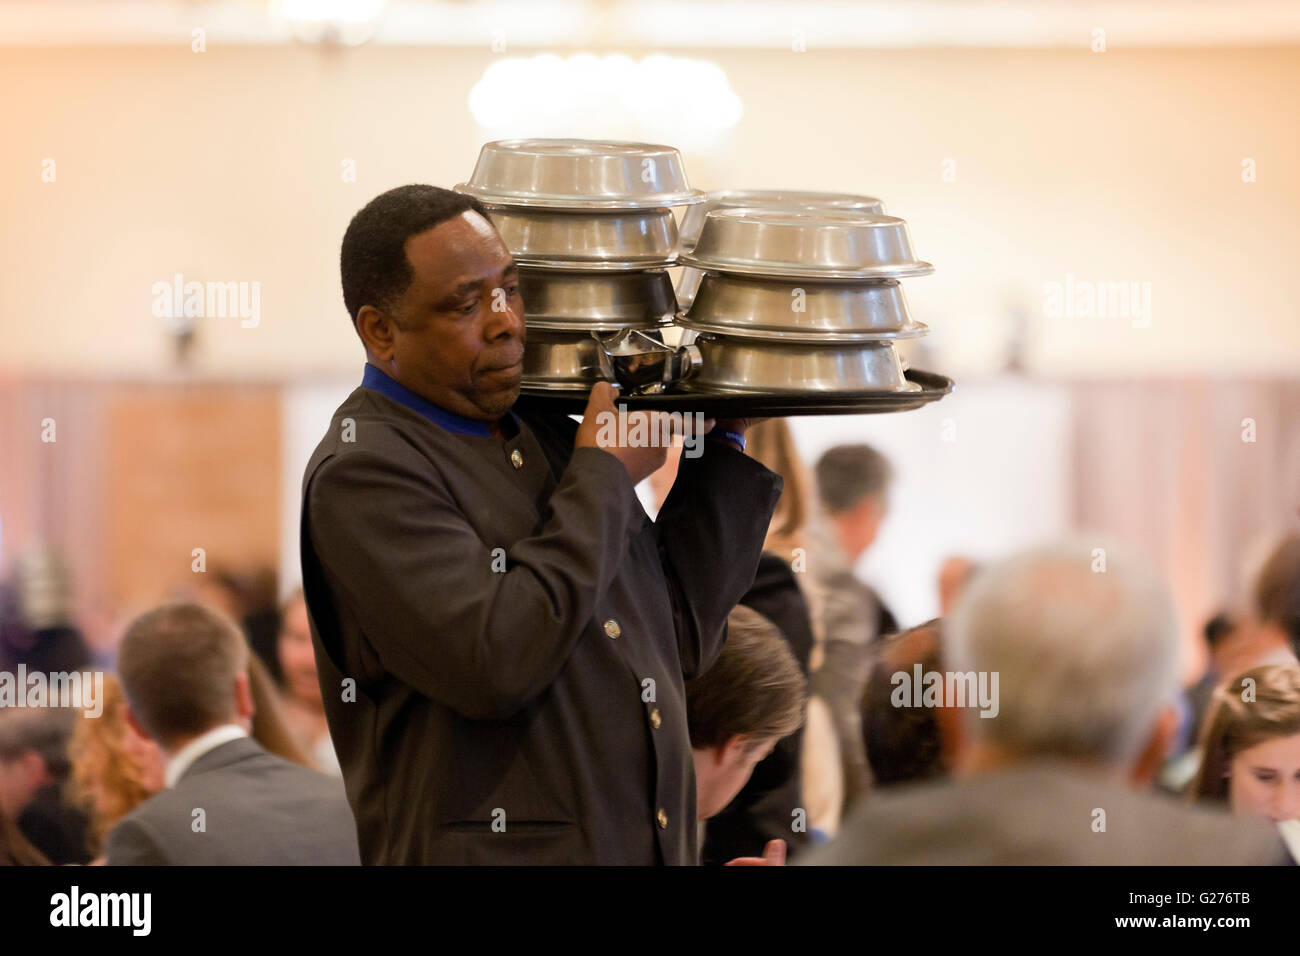 Hotel banquet server - USA - Stock Image